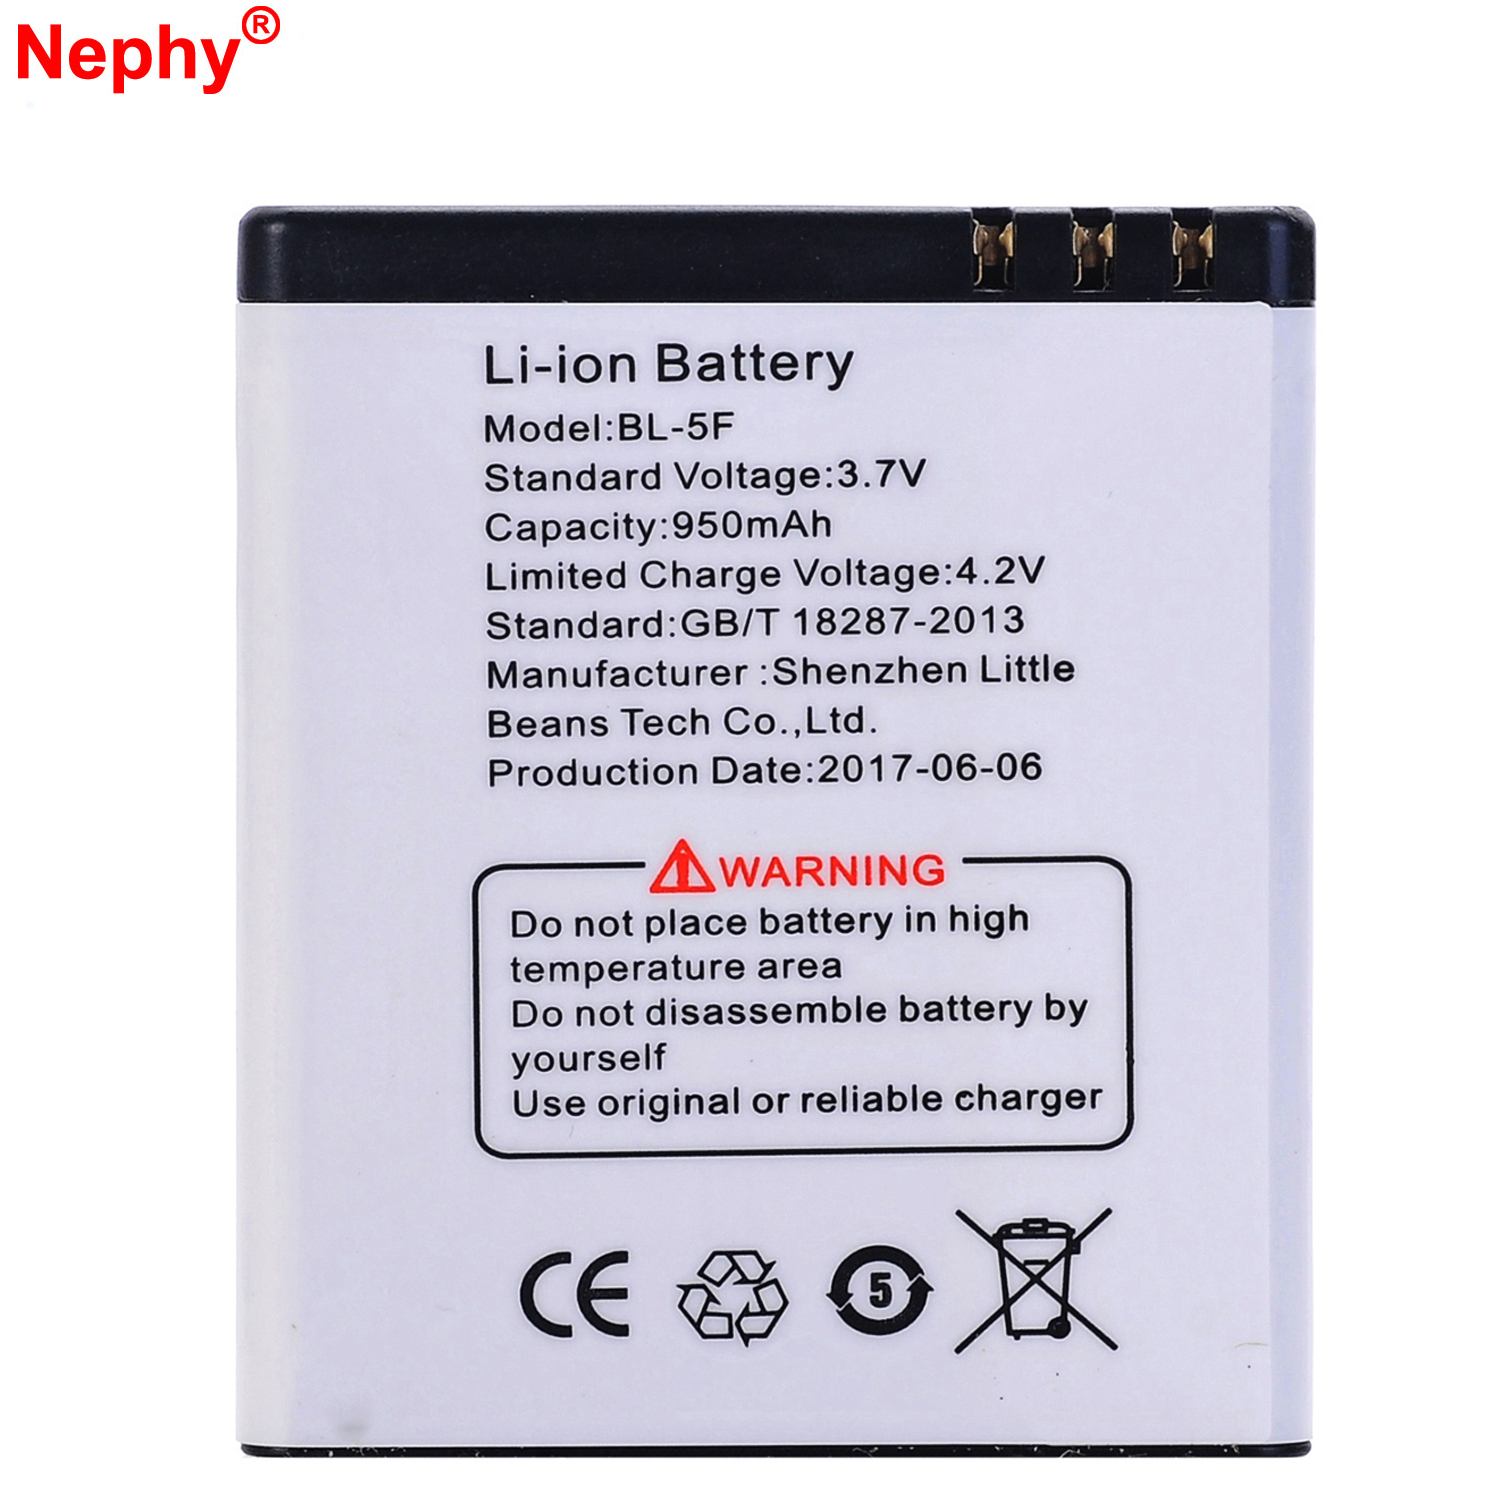 Nokia x5 00 images amp pictures becuo - 2017 Nephy Original Battery Bl 5f For Nokia 6290 C5 01 X5 X5